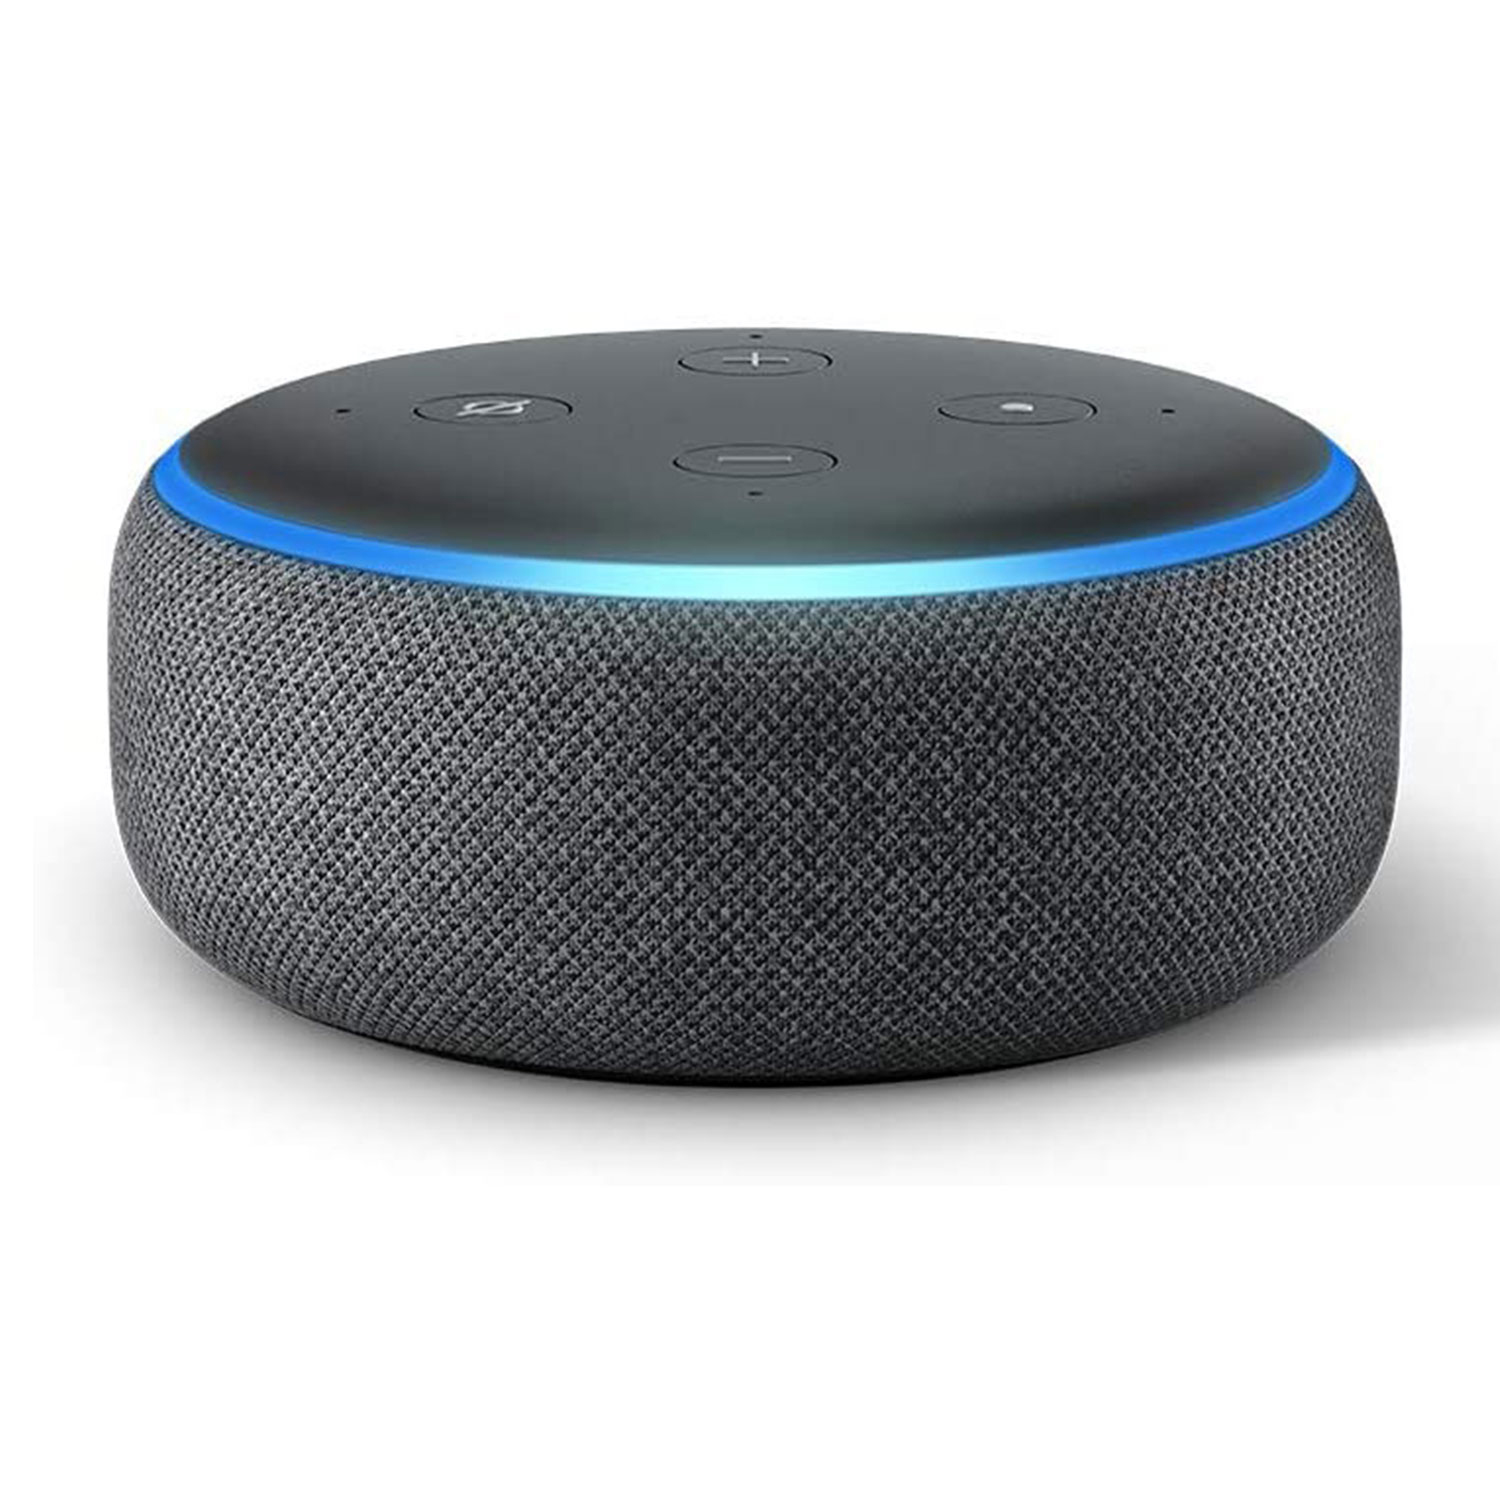 Smart home gadgets from Amazon